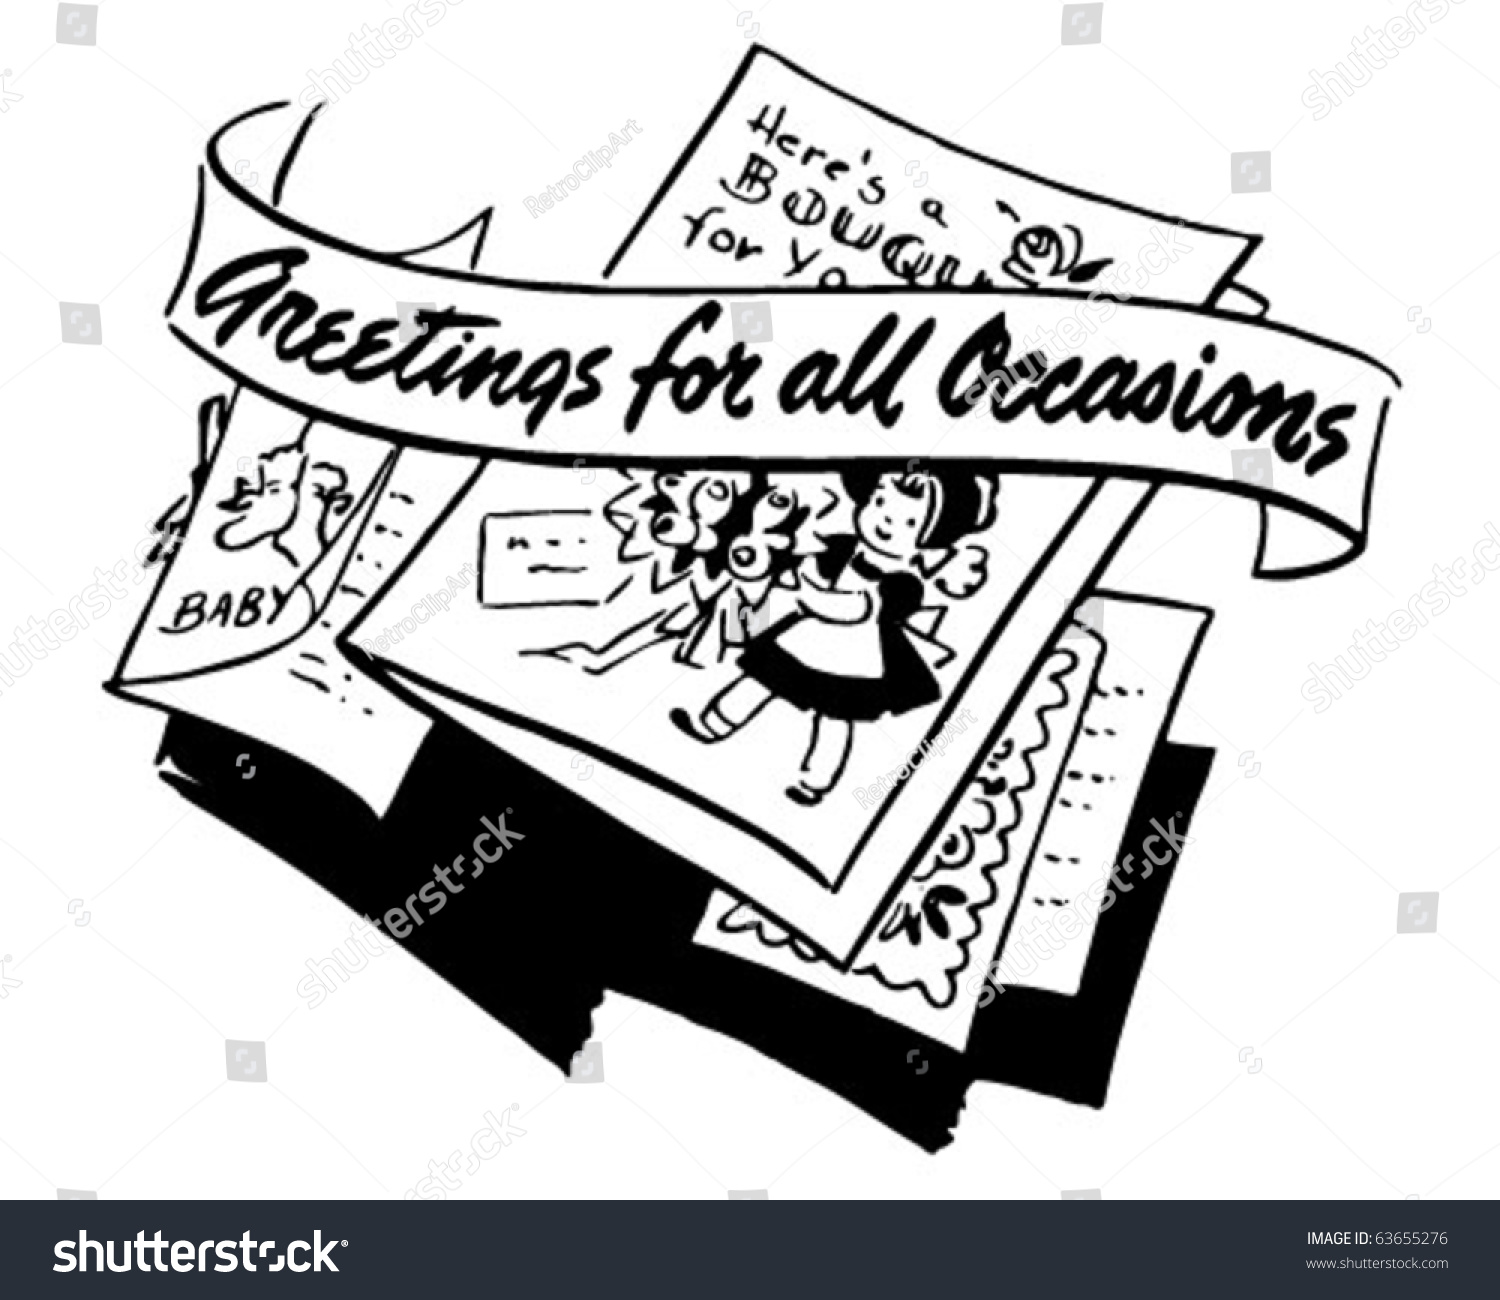 Greetings All Occasions Ad Header Retro Stock Vector Royalty Free